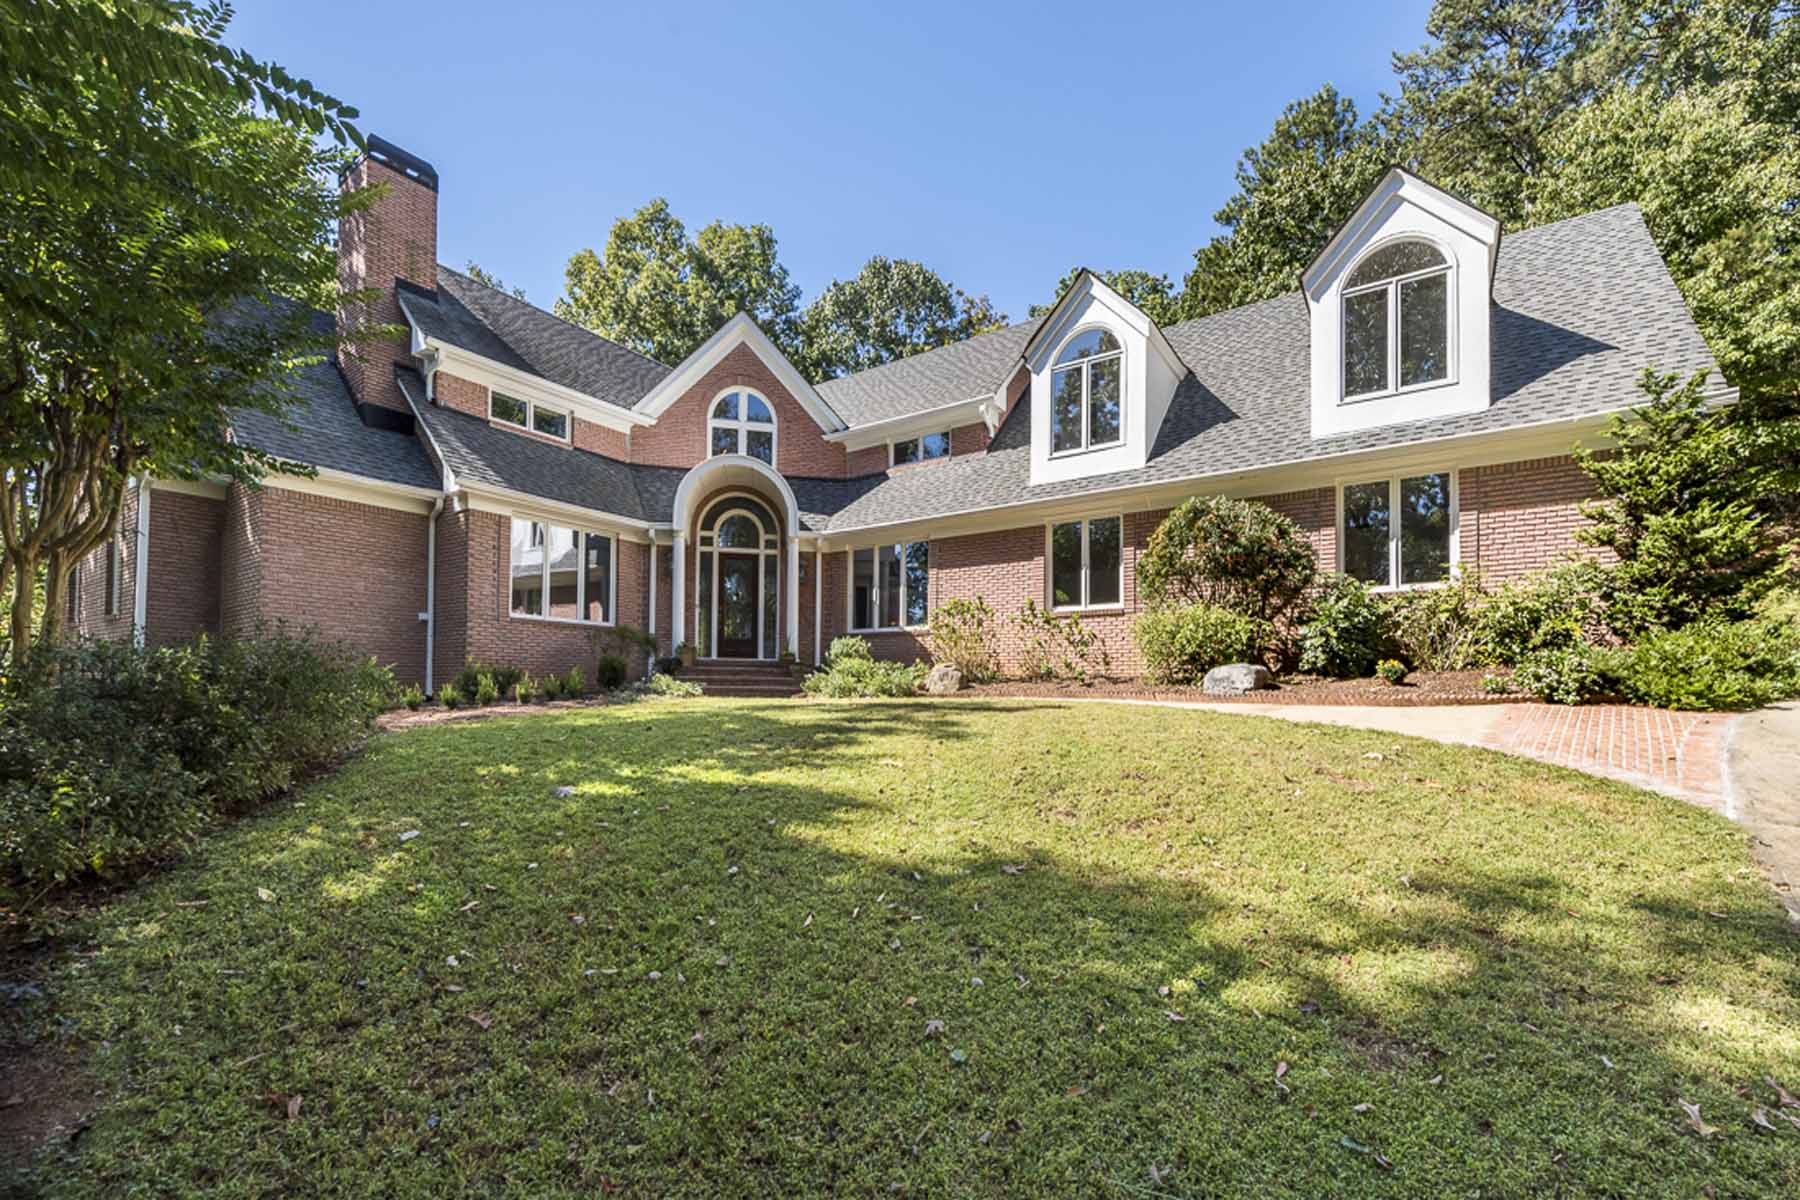 Single Family Home for Sale at Gated Retreat 4910 Spruce Bluff Drive Sandy Springs, Georgia, 30350 United States